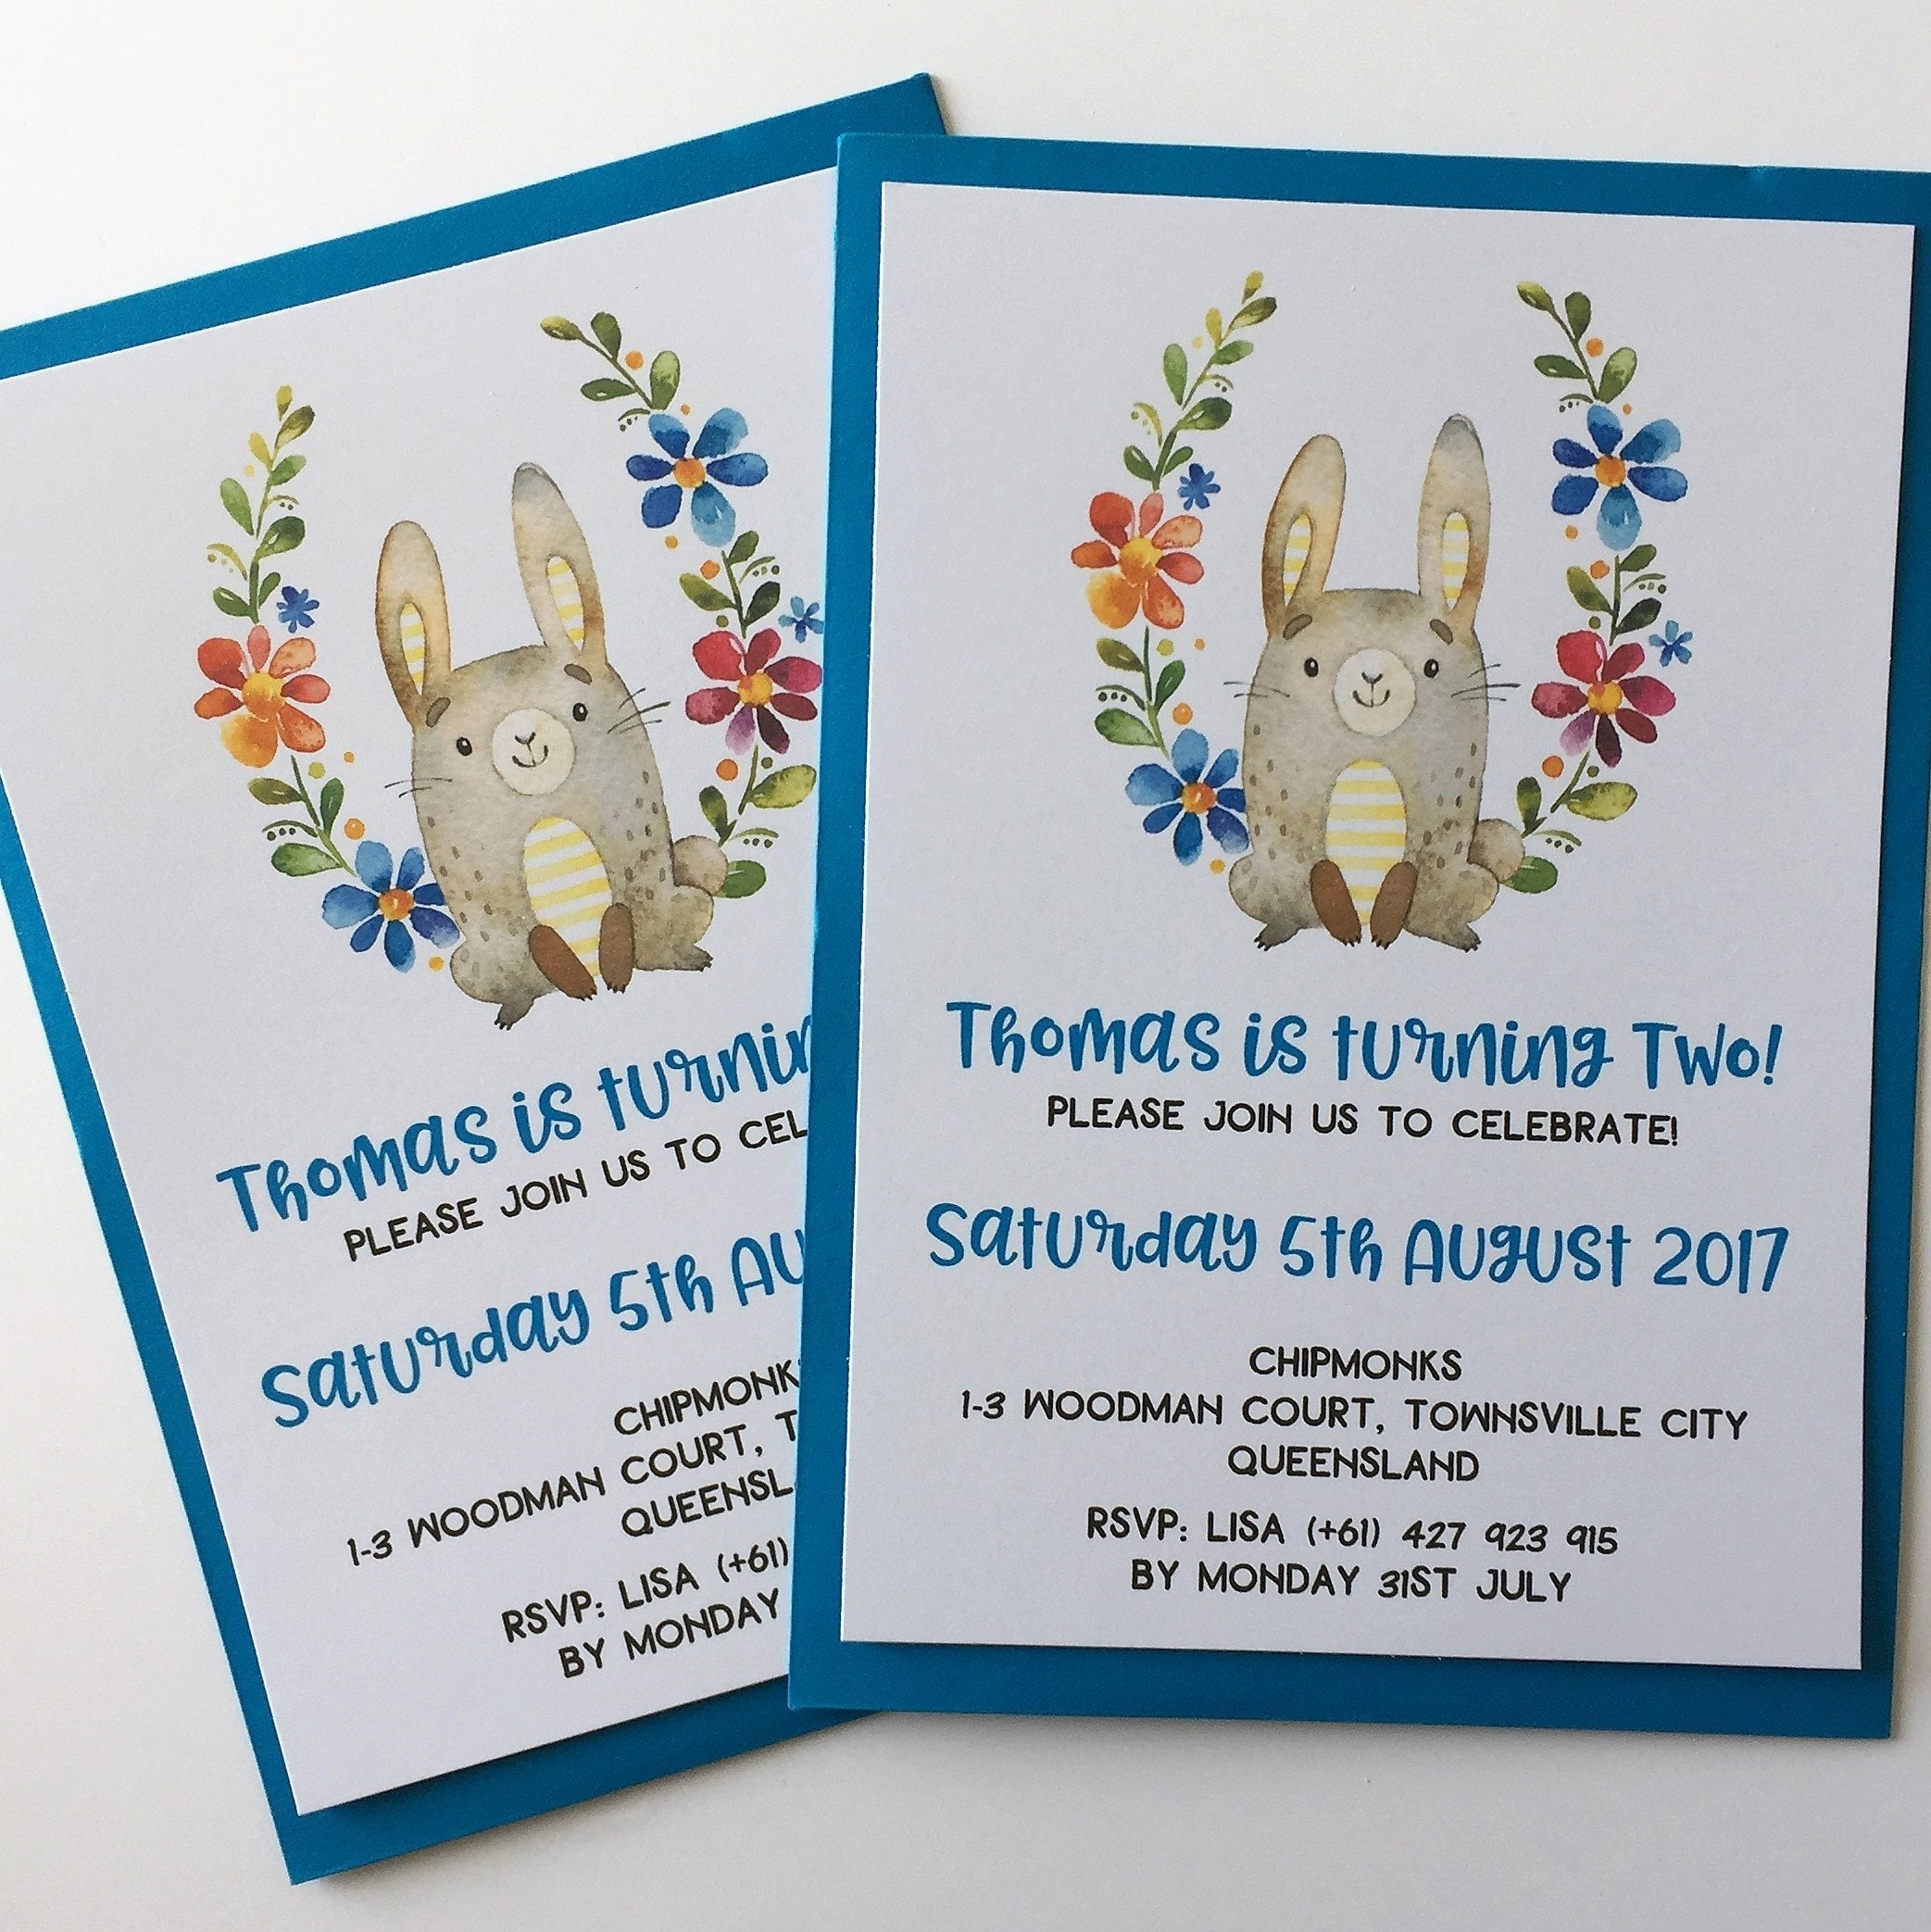 dolkens invitations other events woodland rabbit childrens birthday invitation